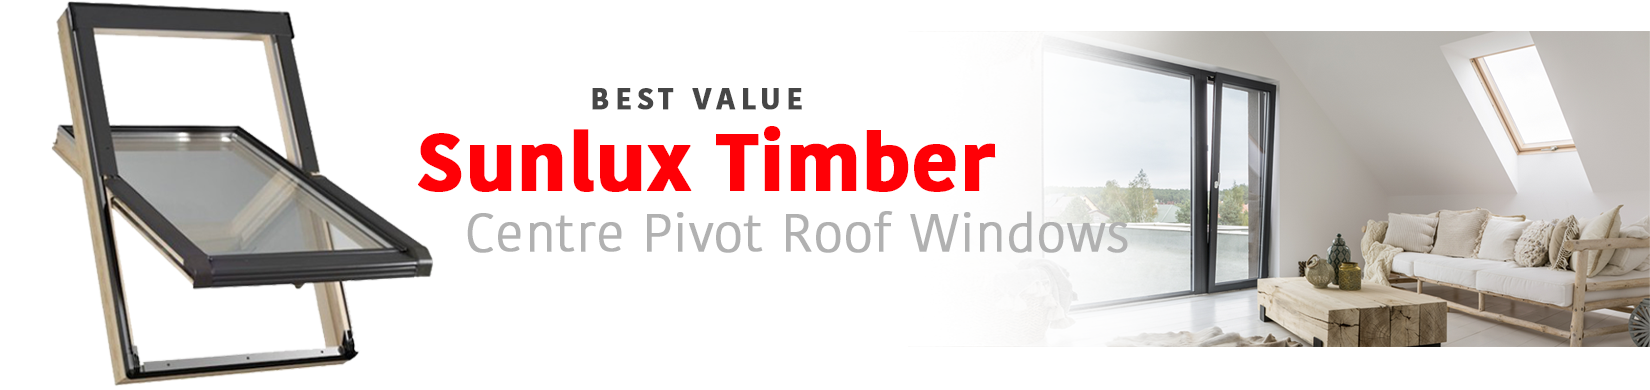 Sunlux center pivot timber roof windows